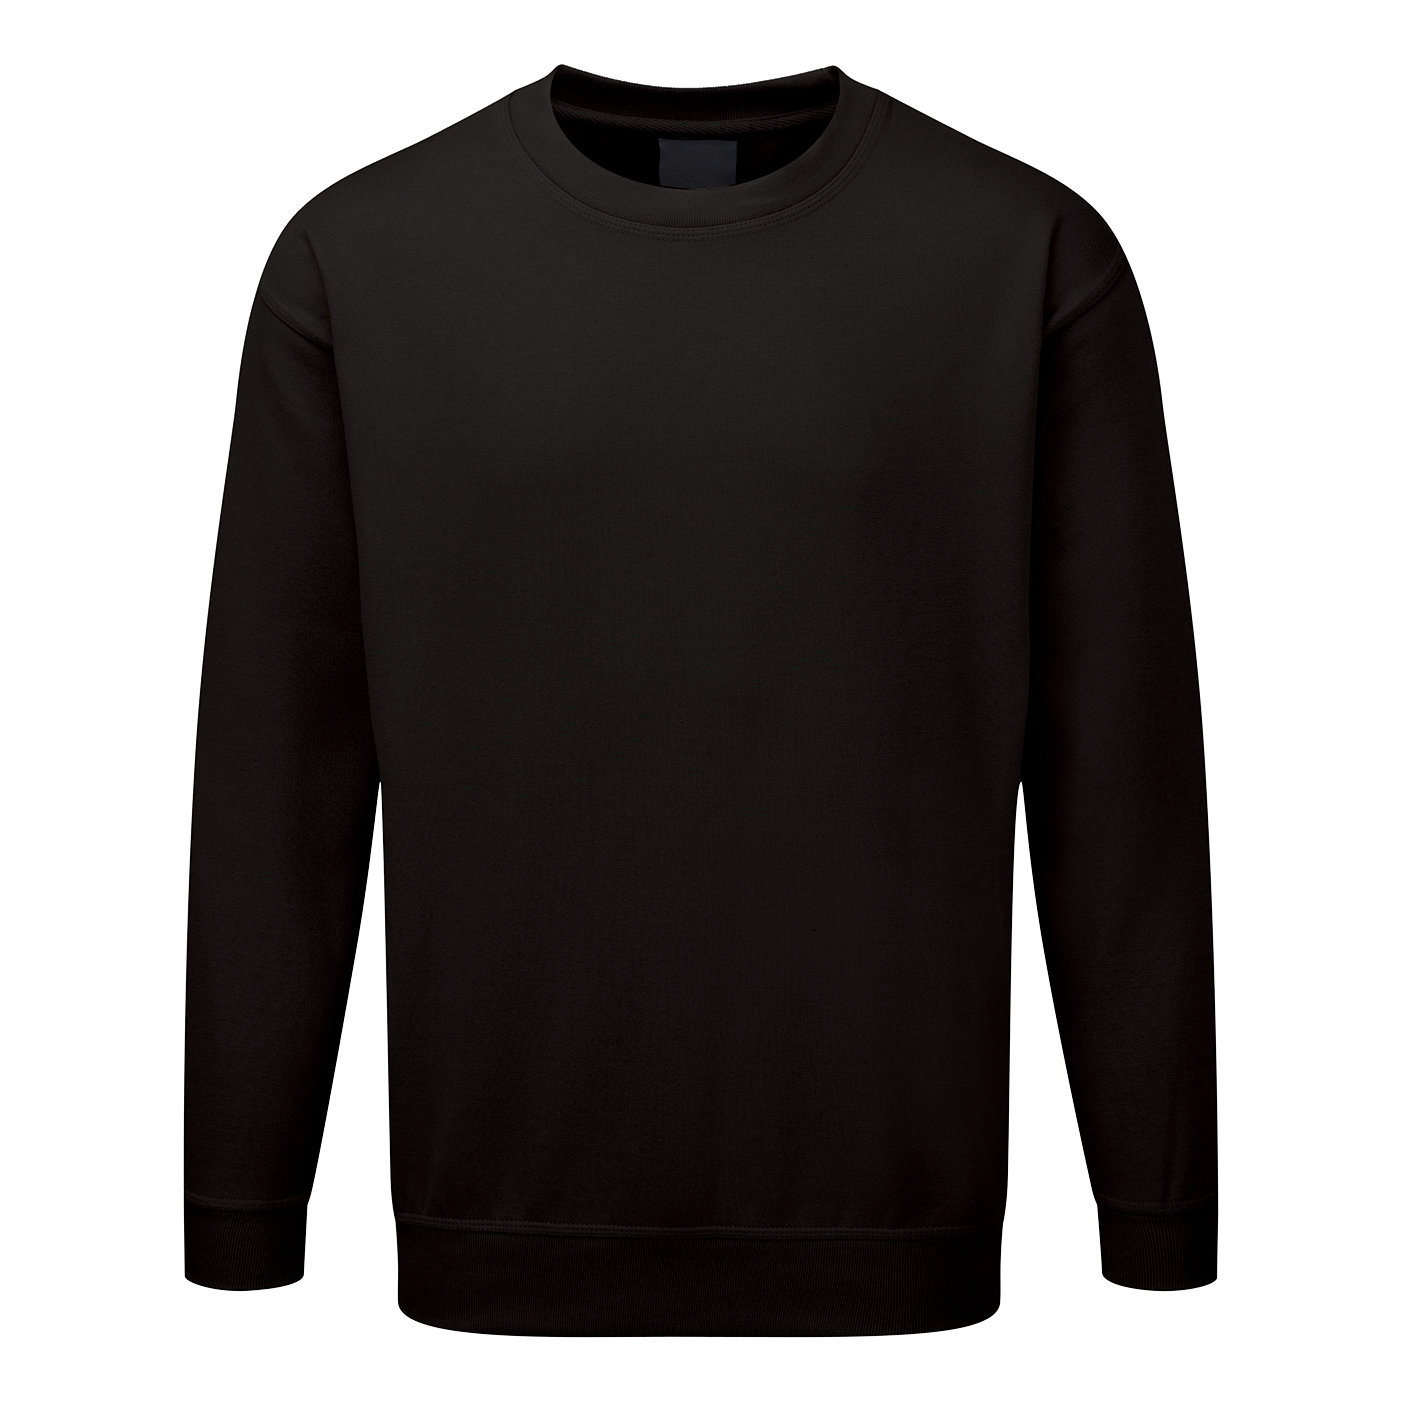 Click Workwear Sweatshirt Polycotton 300gsm Large Black Ref CLPCSBLL 1-3 Days Lead Time